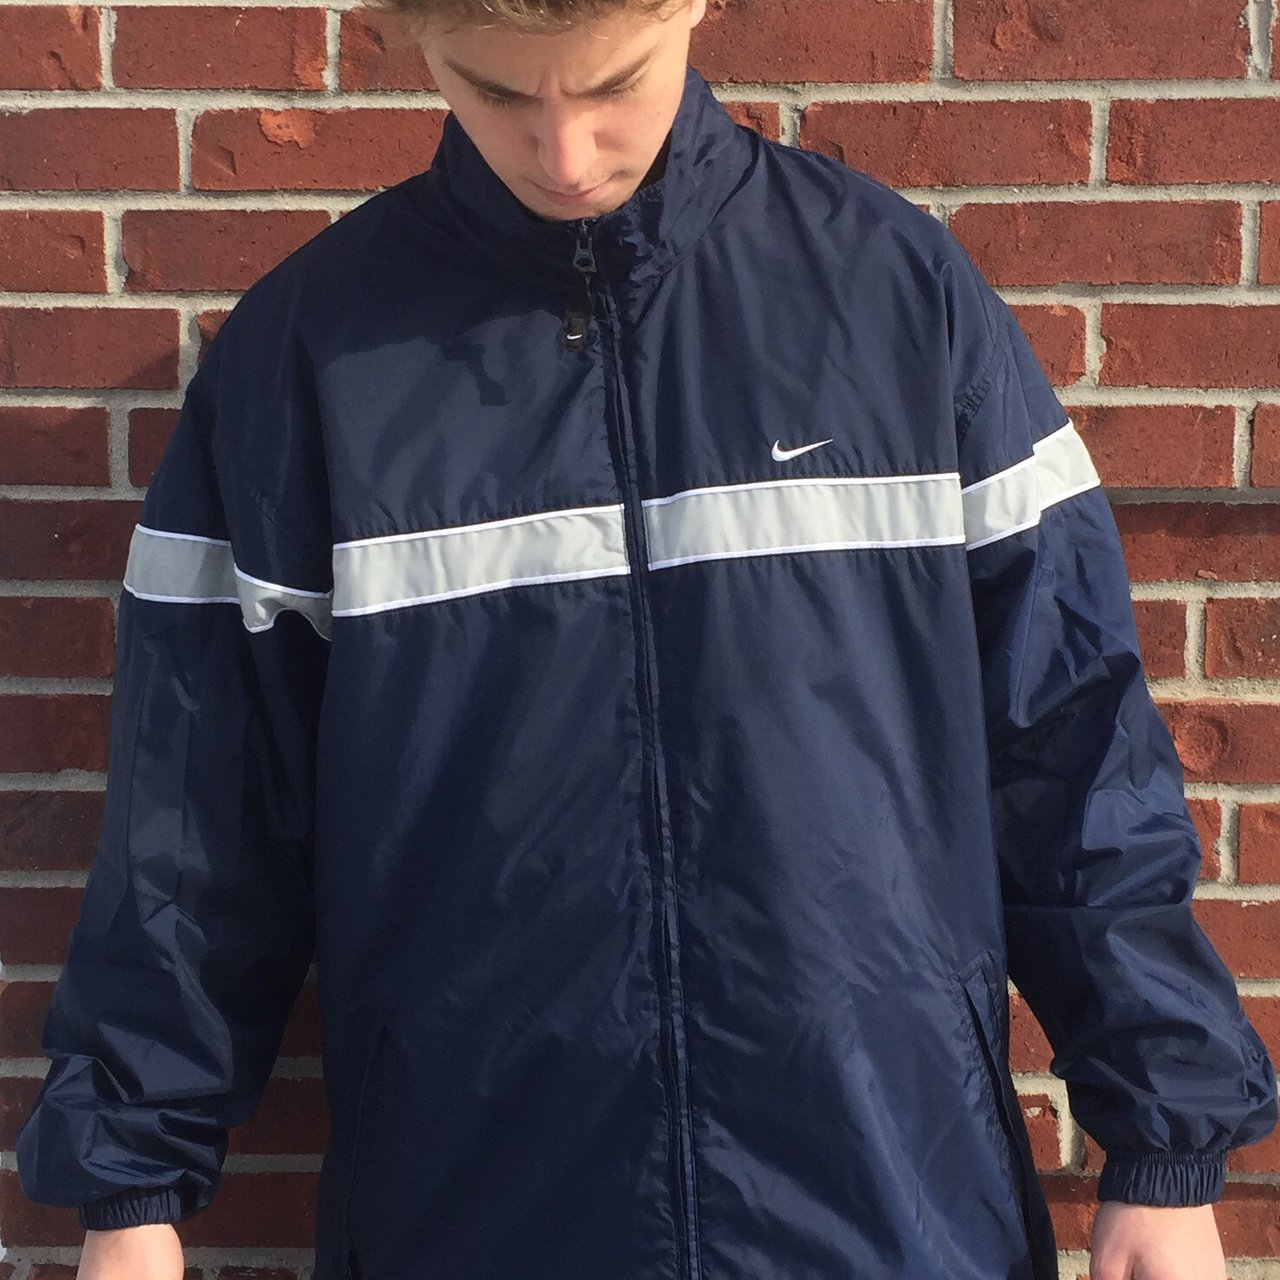 08a8cbc9e39e Nike windbreaker navy blue with grey stripe across chest and - Depop